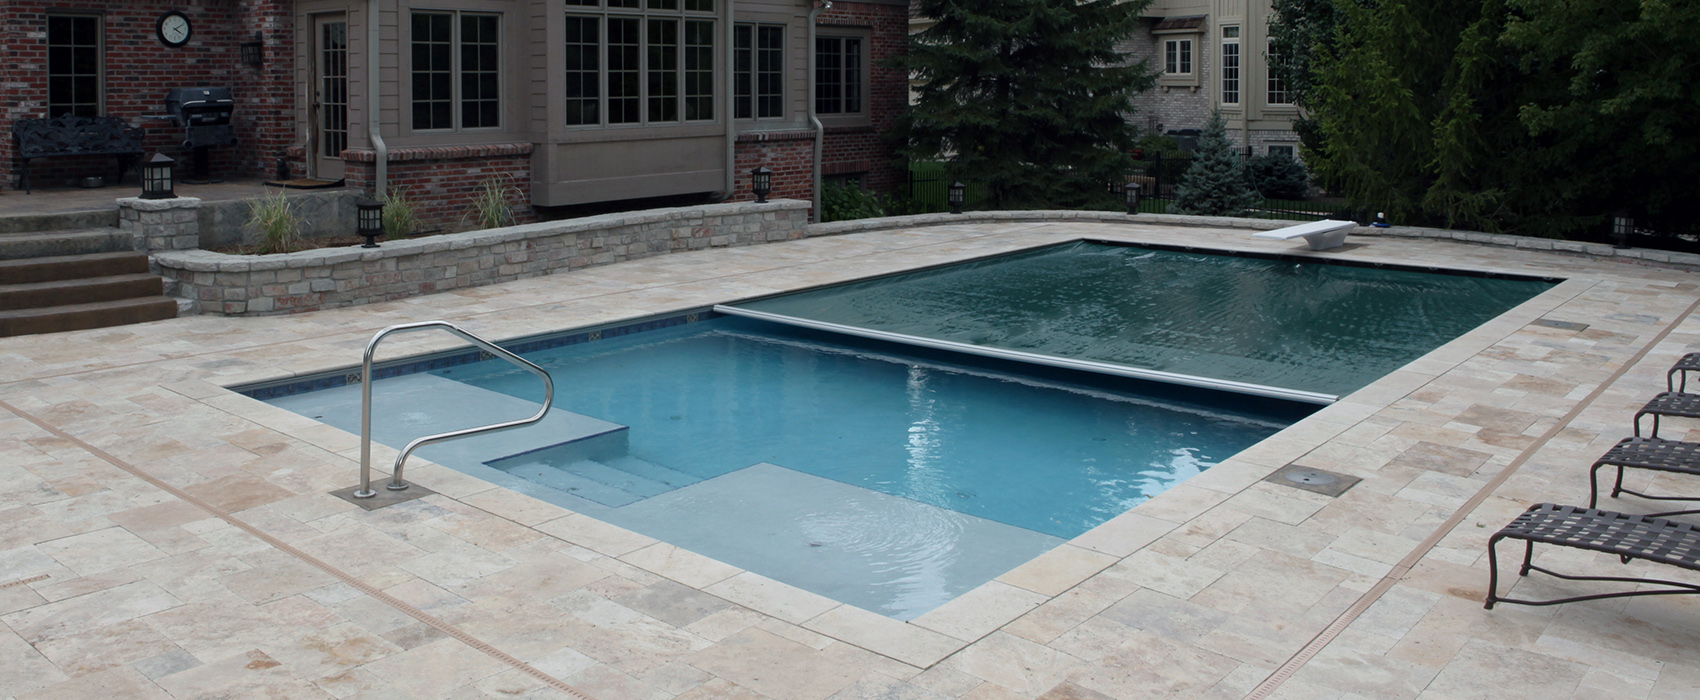 above ground liner, above ground liners, replacement liners, above ground replacement liners, in ground replacement liners, liner patterns, in ground vinyl liners, vinyl liners, in ground liner, in ground swimming pool liner, in-ground liner, in-ground swimming pool liner